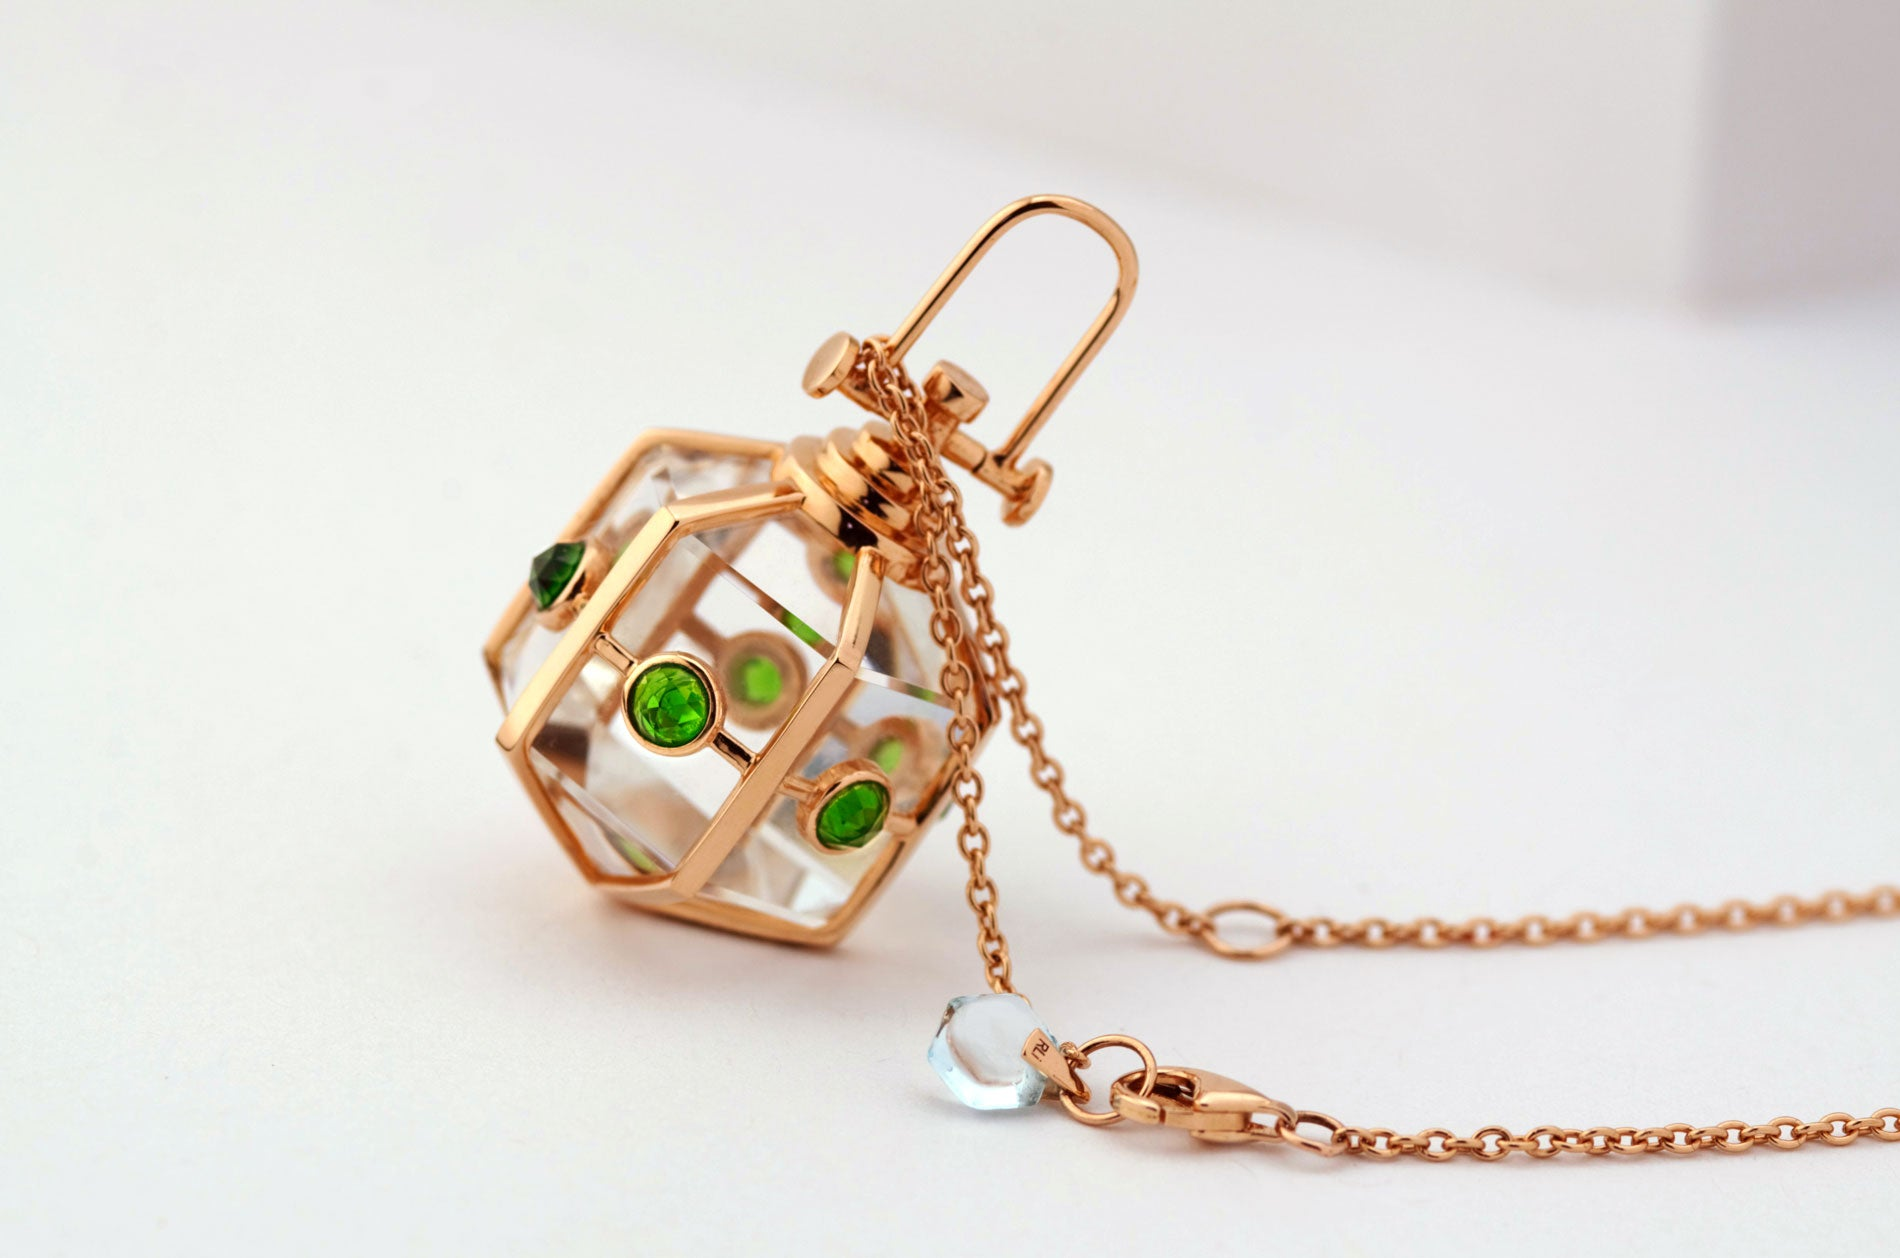 18k solid rose gold six senses talisman with diopside and rock crystal